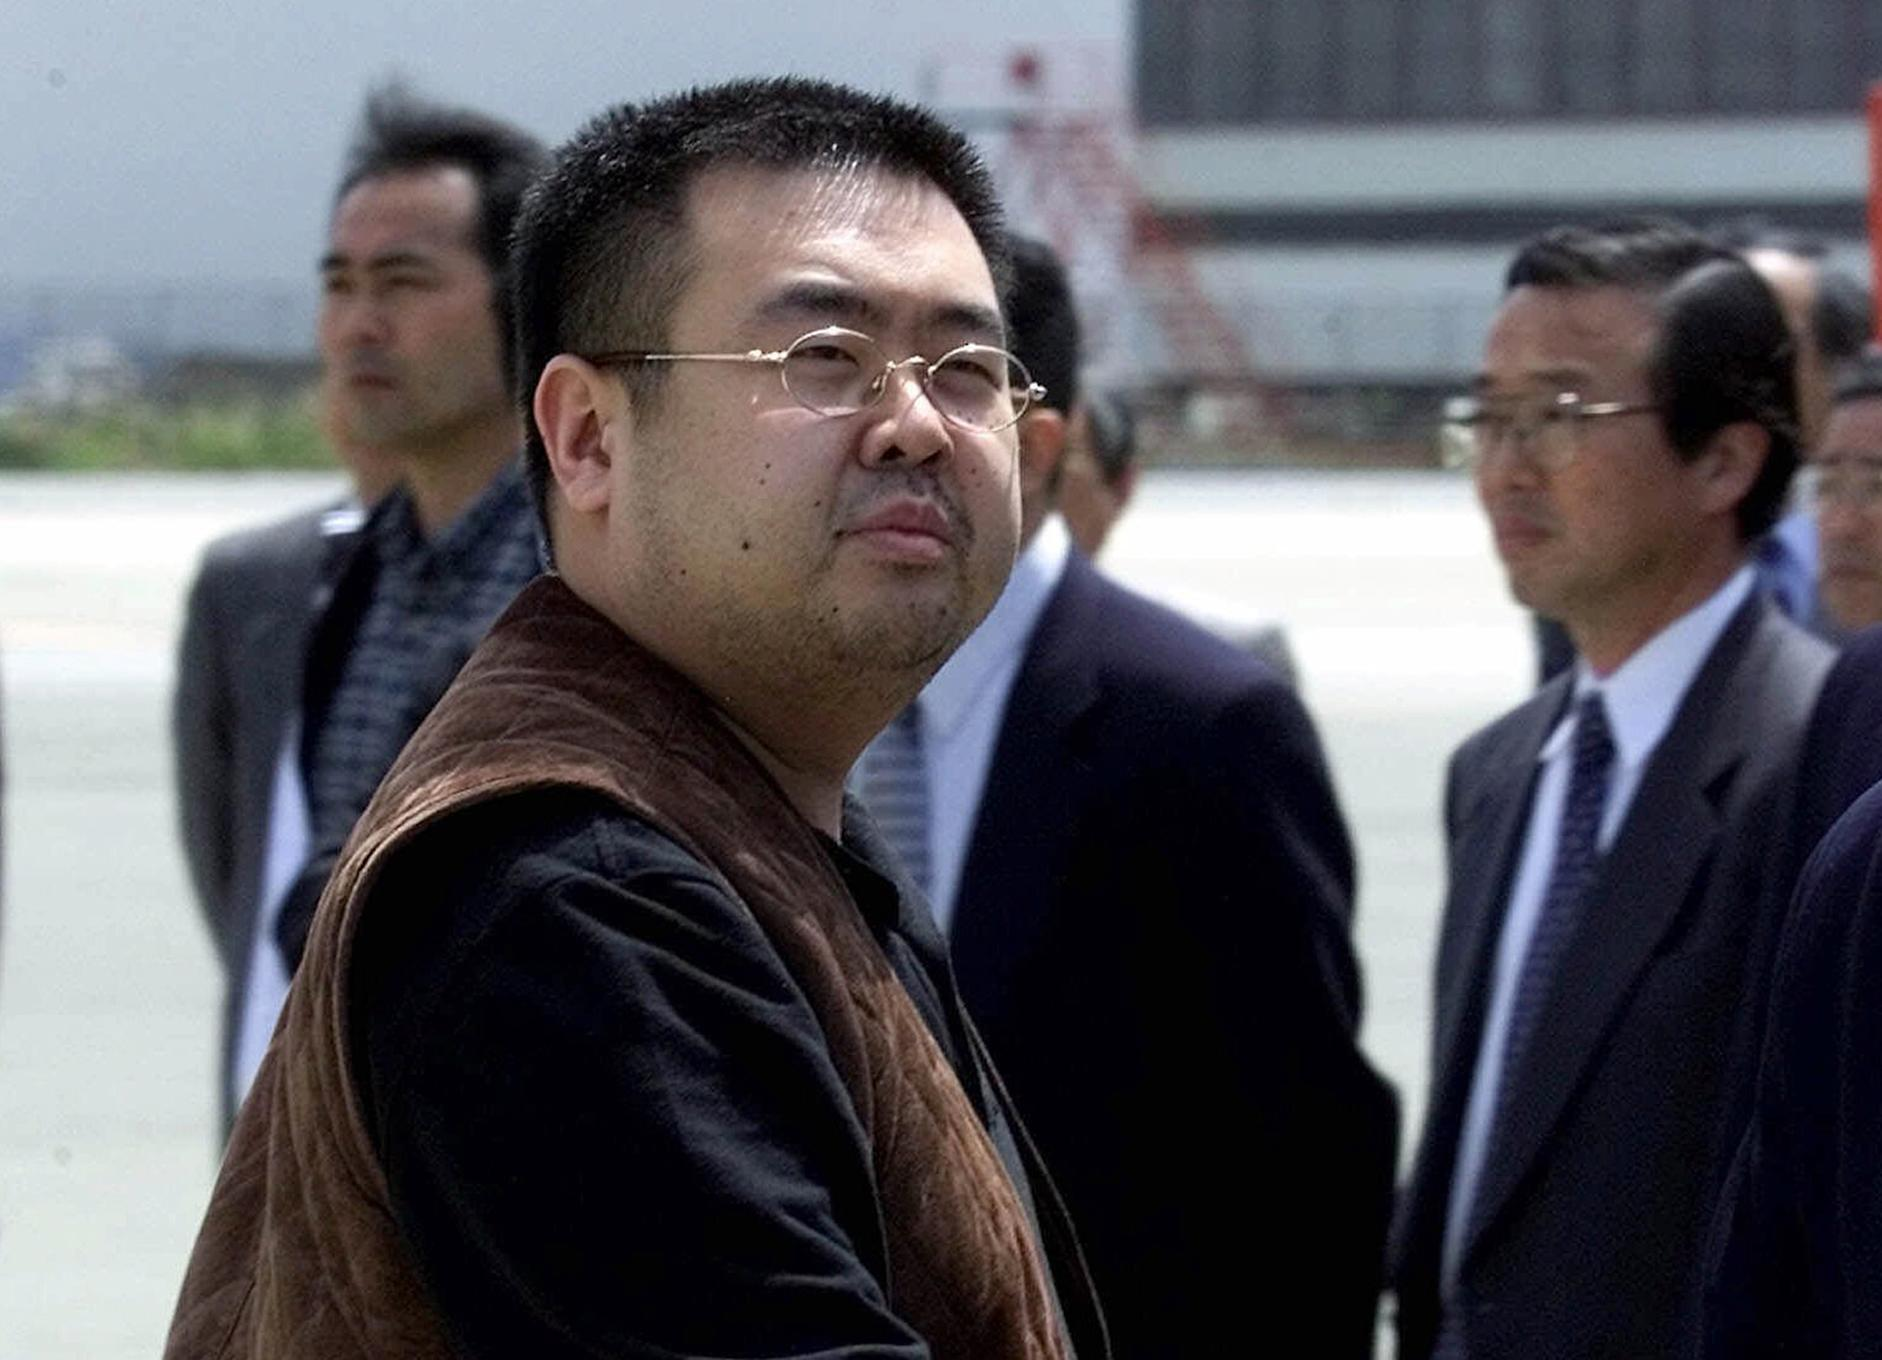 FILE - In this May 4, 2001, file photo, a man believed to be Kim Jong Nam, the eldest son of then North Korean leader Kim Jong Il, looks at a battery of photographers as he exits a police van to board a plane to Beijing at Narita international airport in Narita, northeast of Tokyo. Kim was assassinated at an airport in Kuala Lumpur, telling medical workers before he died that he had been attacked with a chemical spray a Malaysian official said Tuesday. (AP Photo/Shizuo Kambayashi, File)